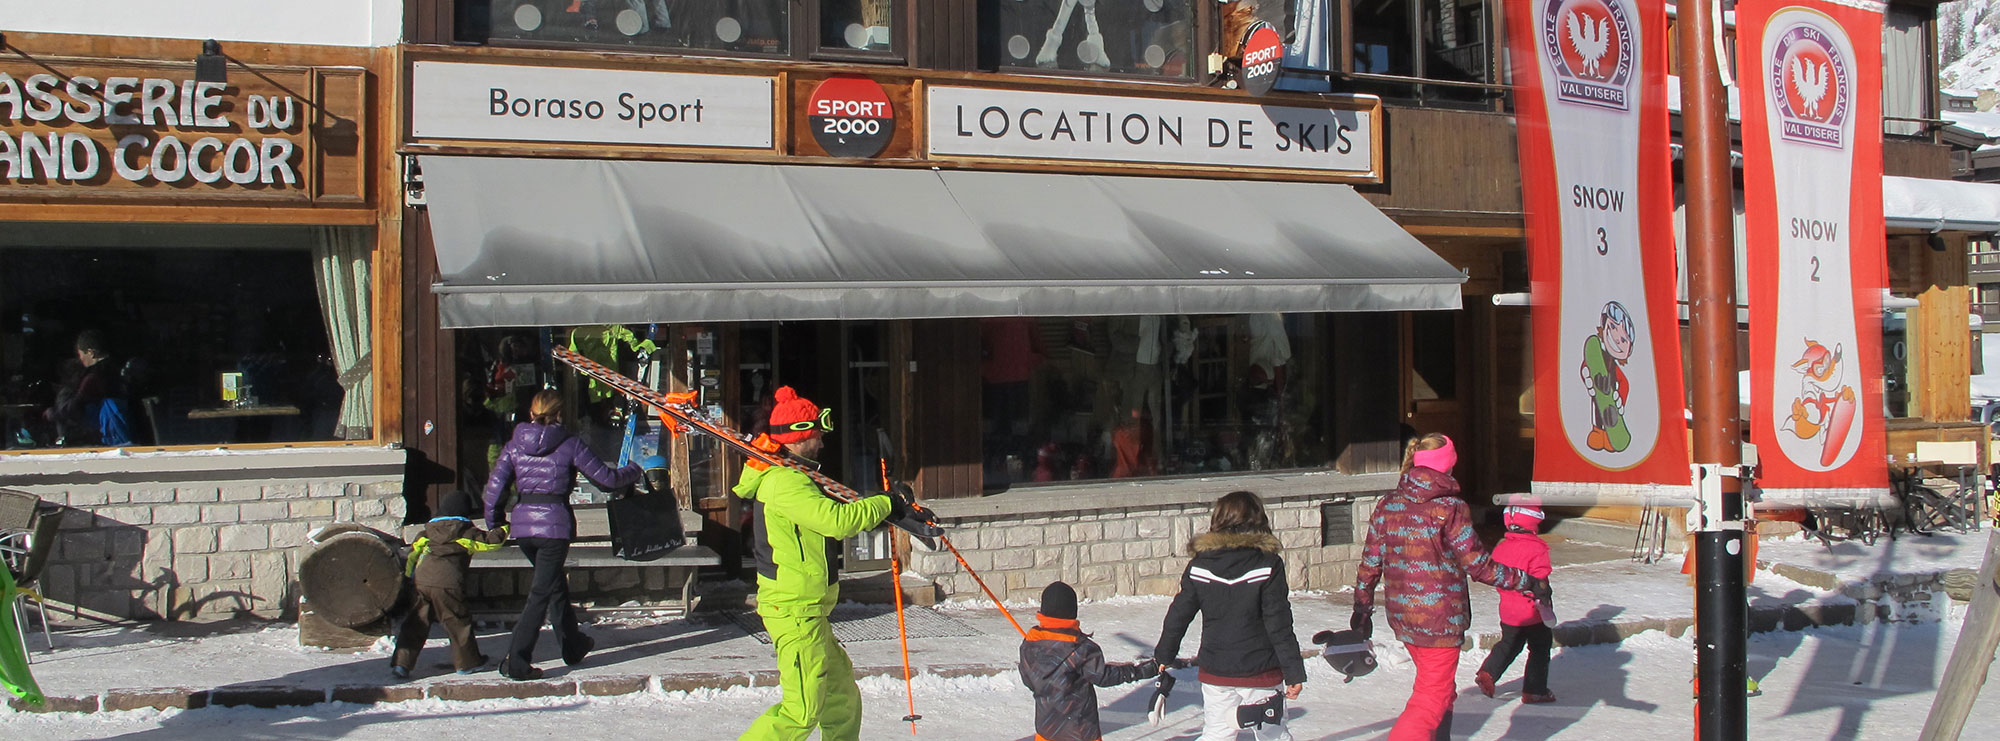 magasin-location-ski-val-disere